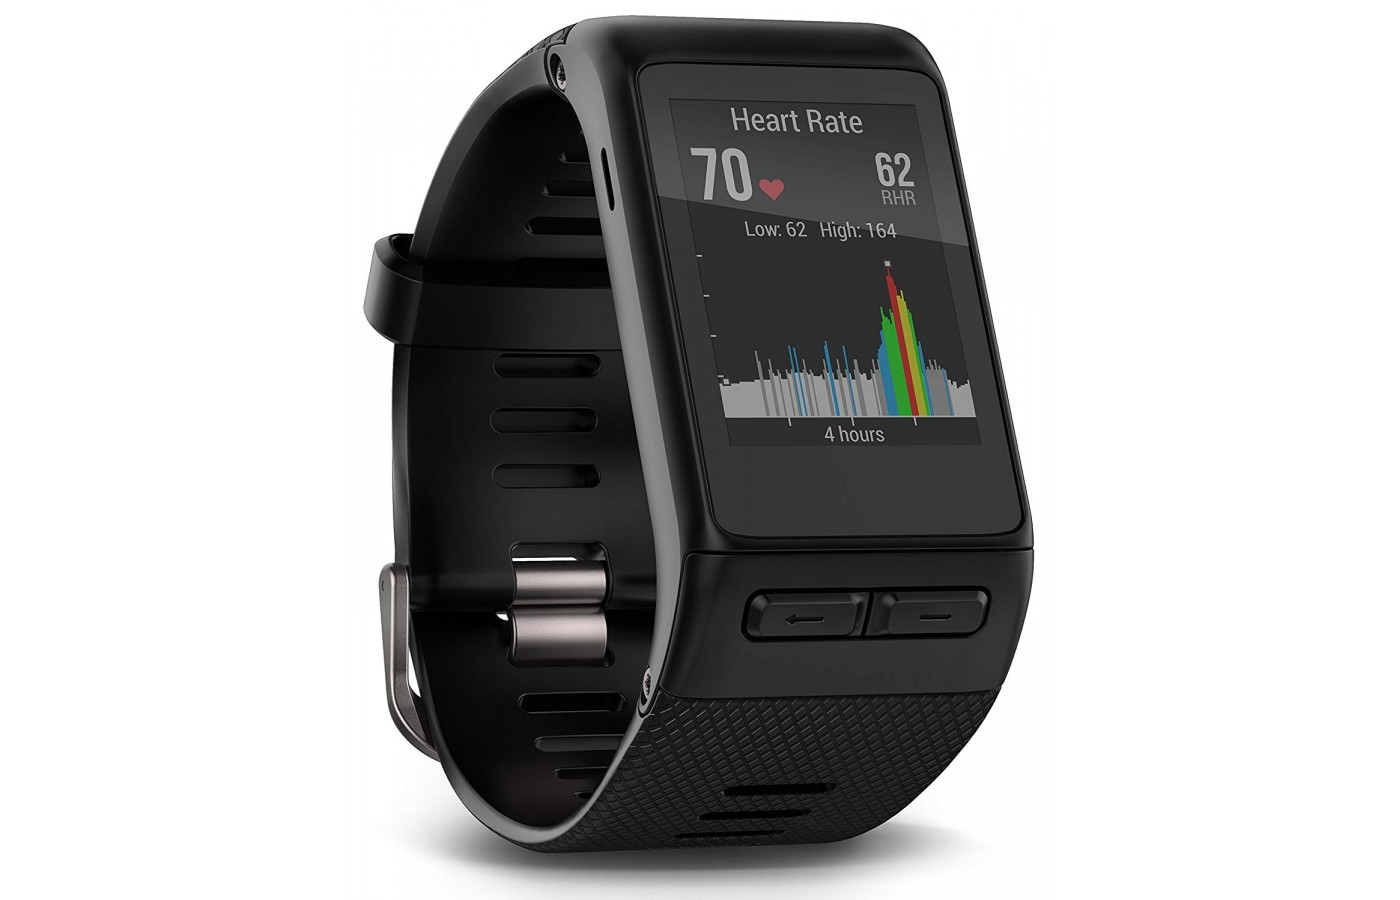 It will also convert your elevated heart rate information into calories burned during any of these passions